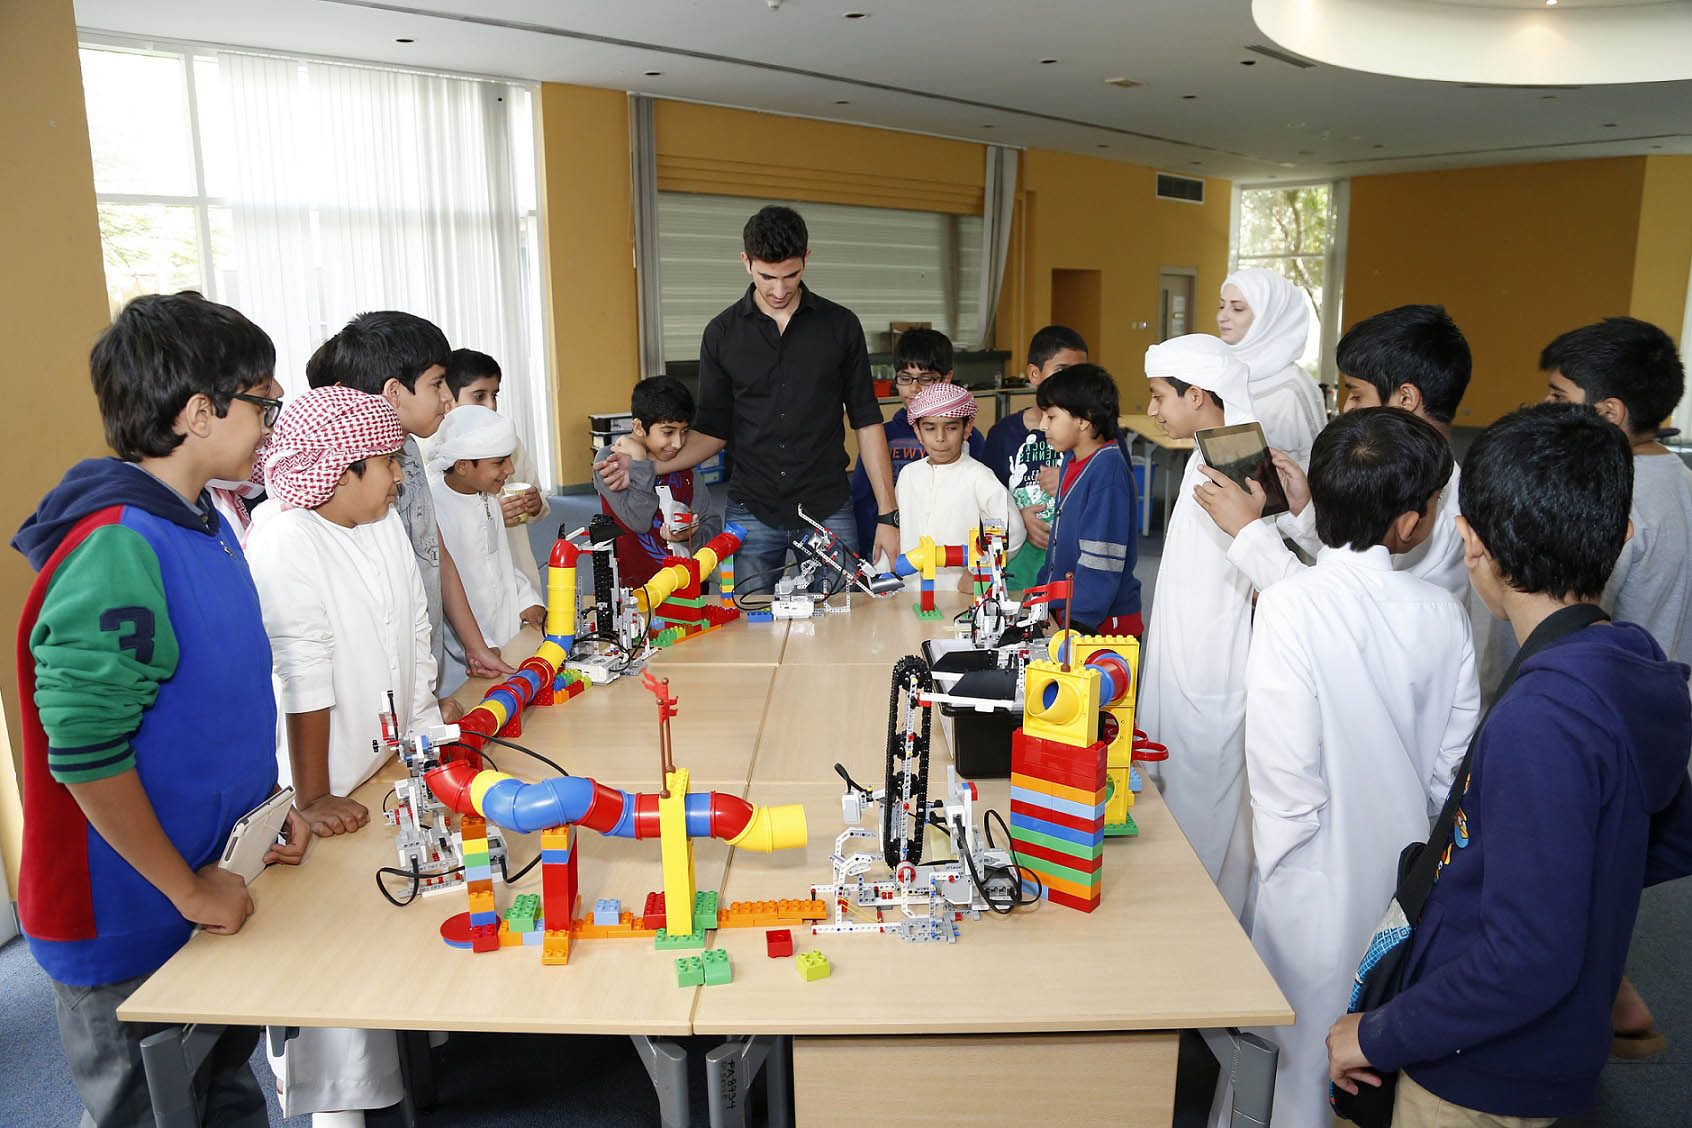 UAE primary school students to build robots as part of Innovation Week